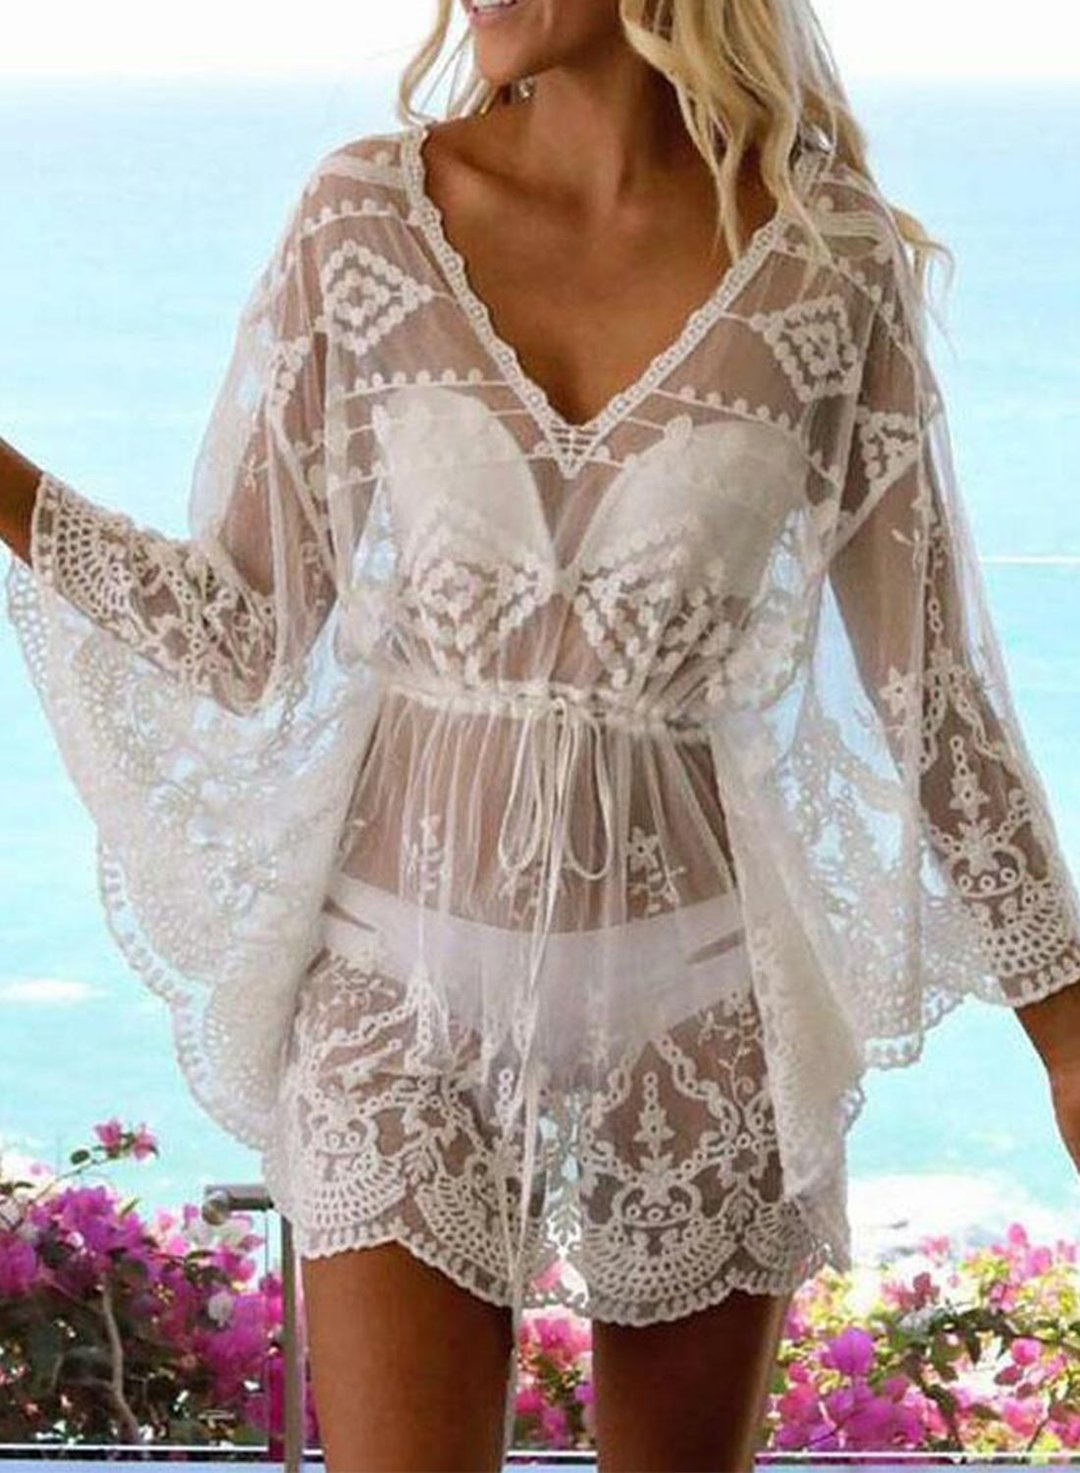 White Women's Mini Dress Solid Lace Fit & Flare V Neck Long Sleeve Vacation Beach Sexy Mini Dress LC42603-1